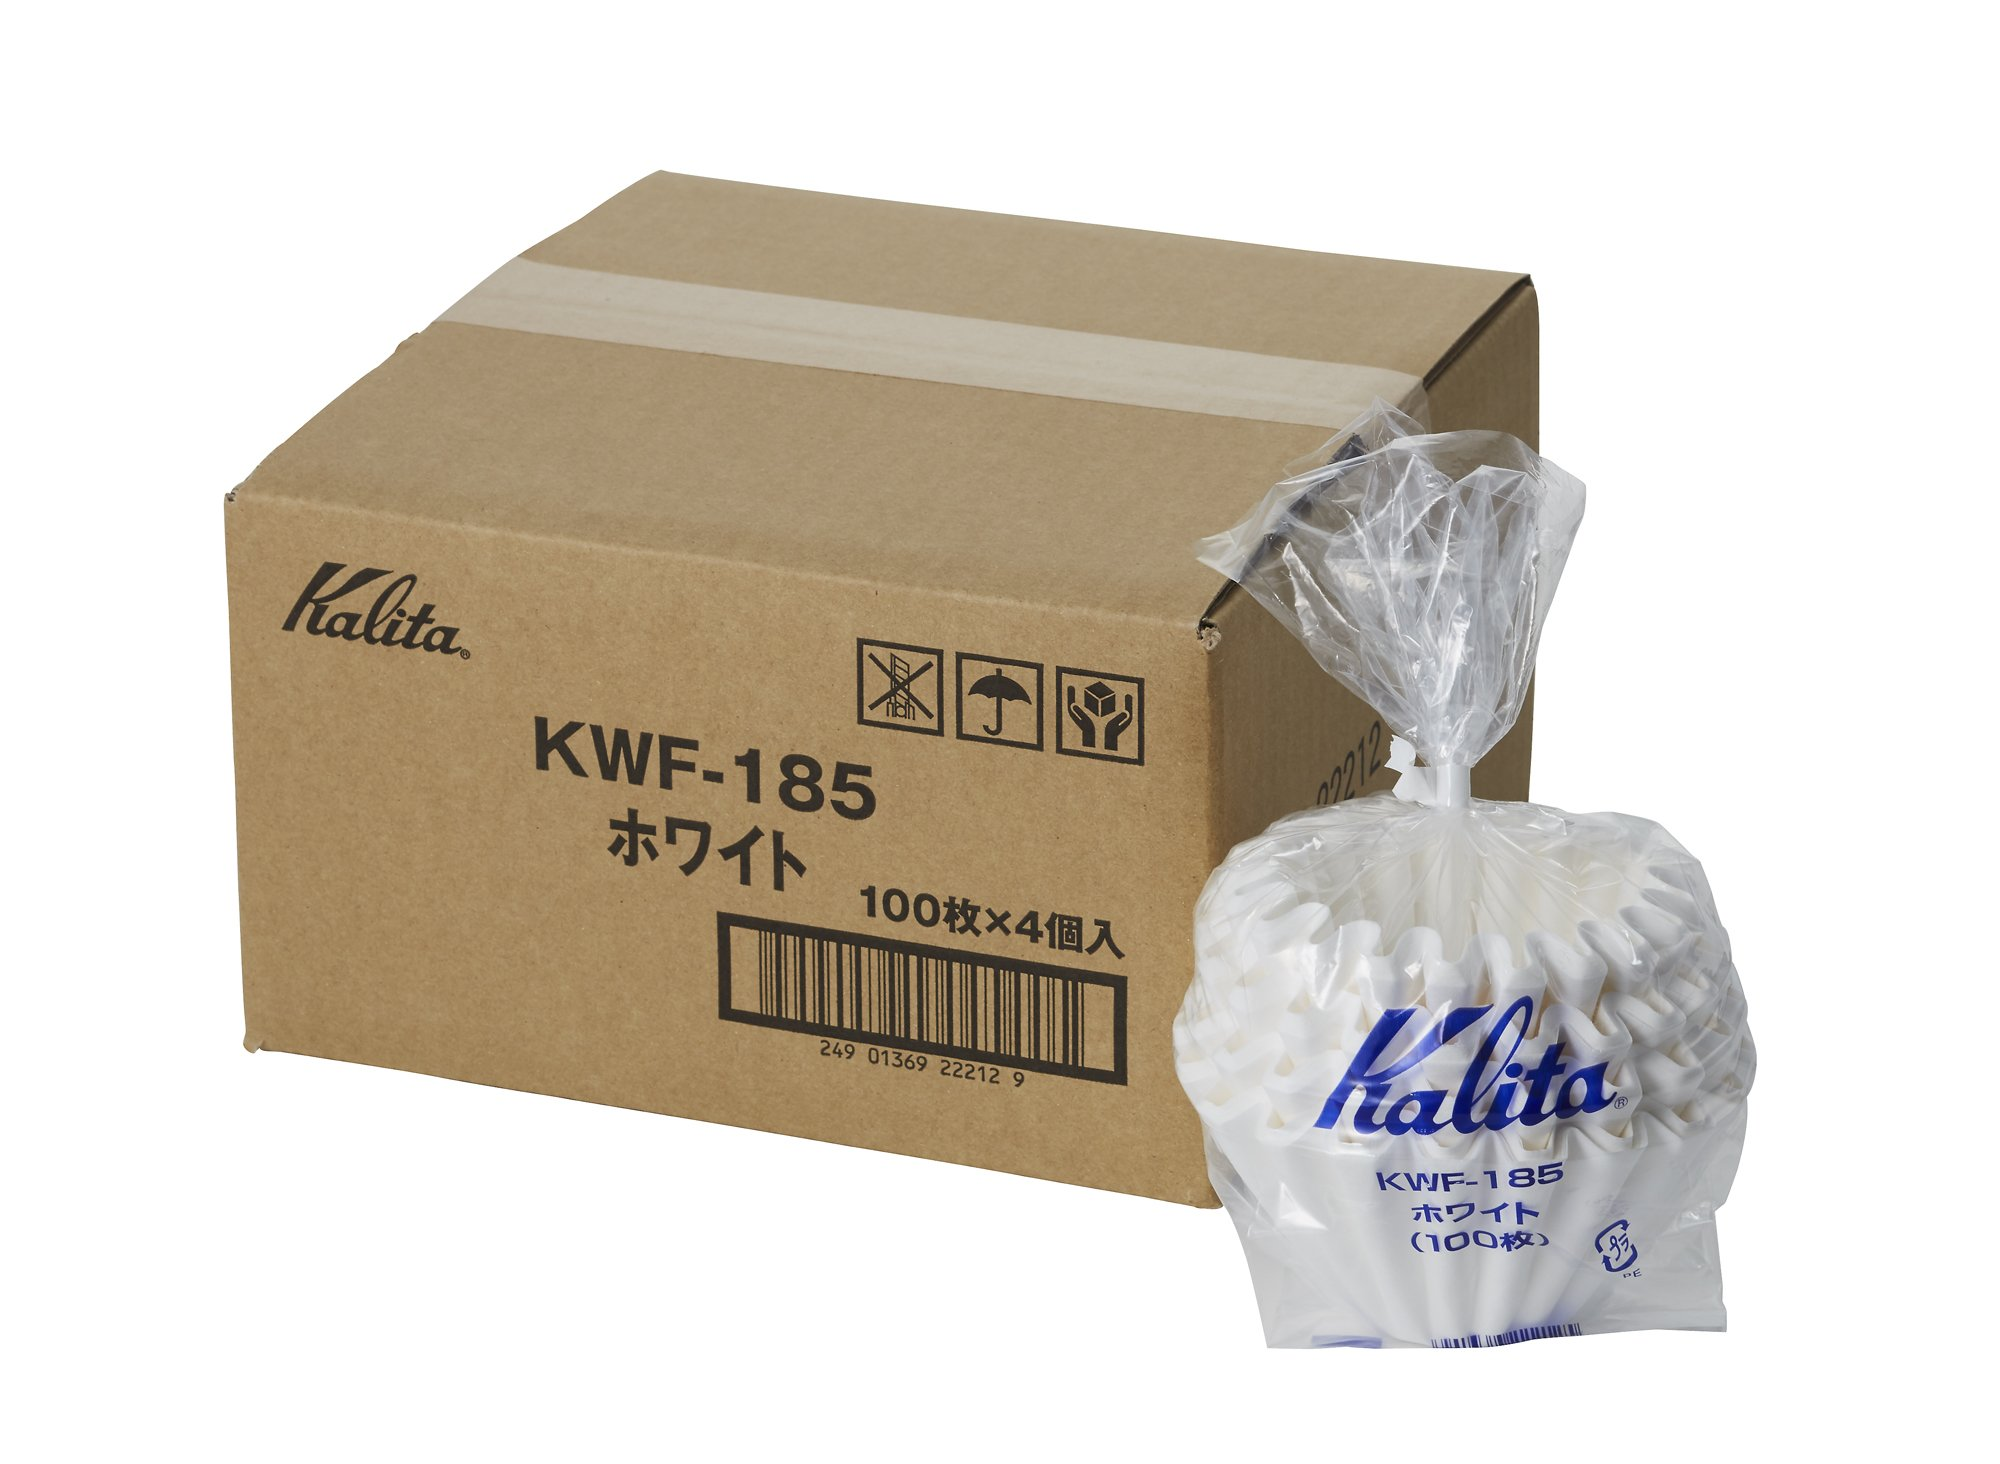 [4set]Kalita New Wave Filter KWF-185 White #22212[Dripper 185 / for 2~4 Persons] 100pcs×4 with an Original Paperclip